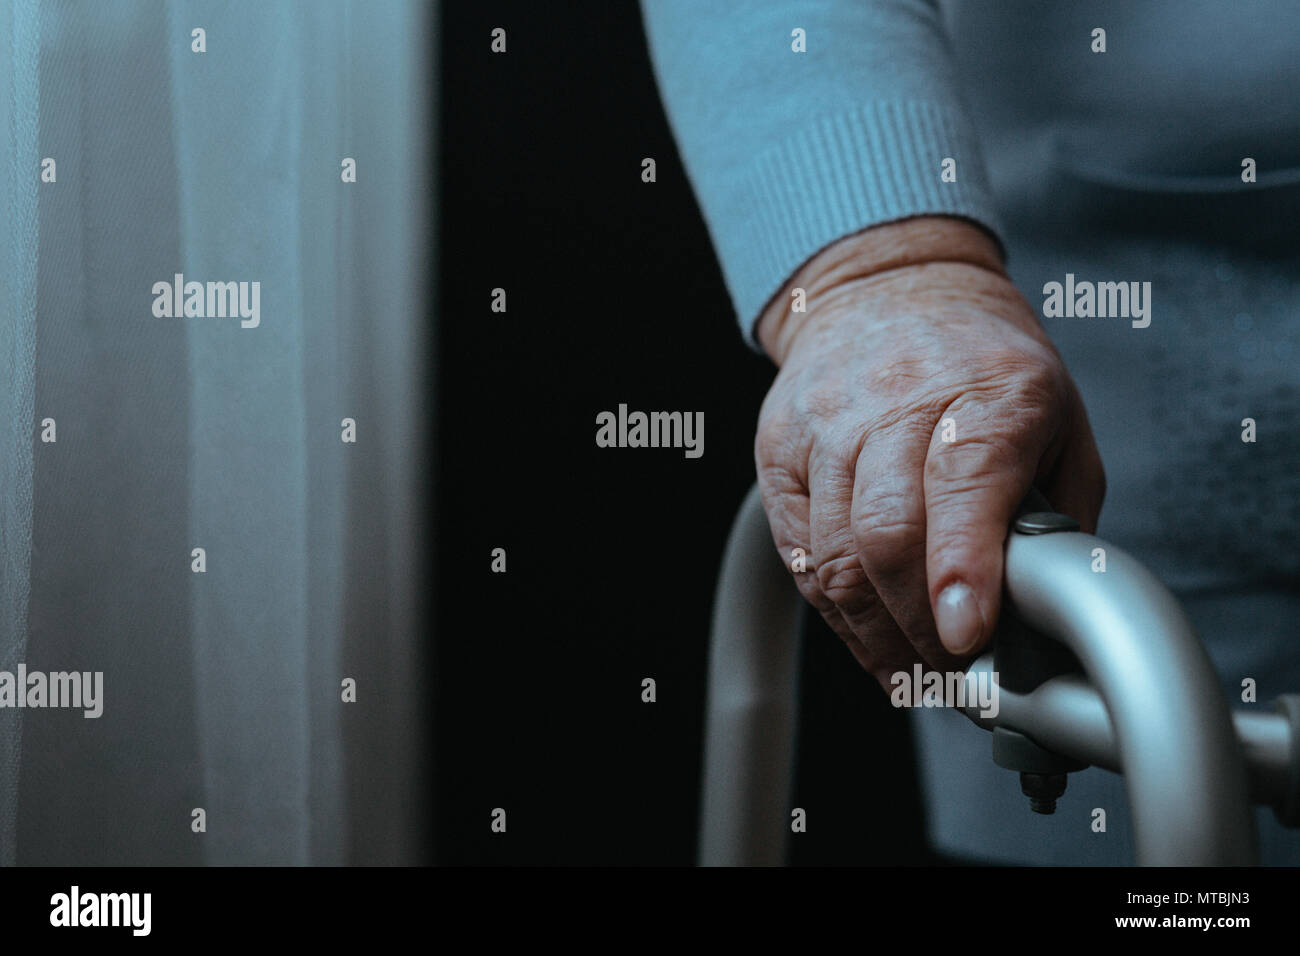 Disableed person with walking frame, close up - Stock Image